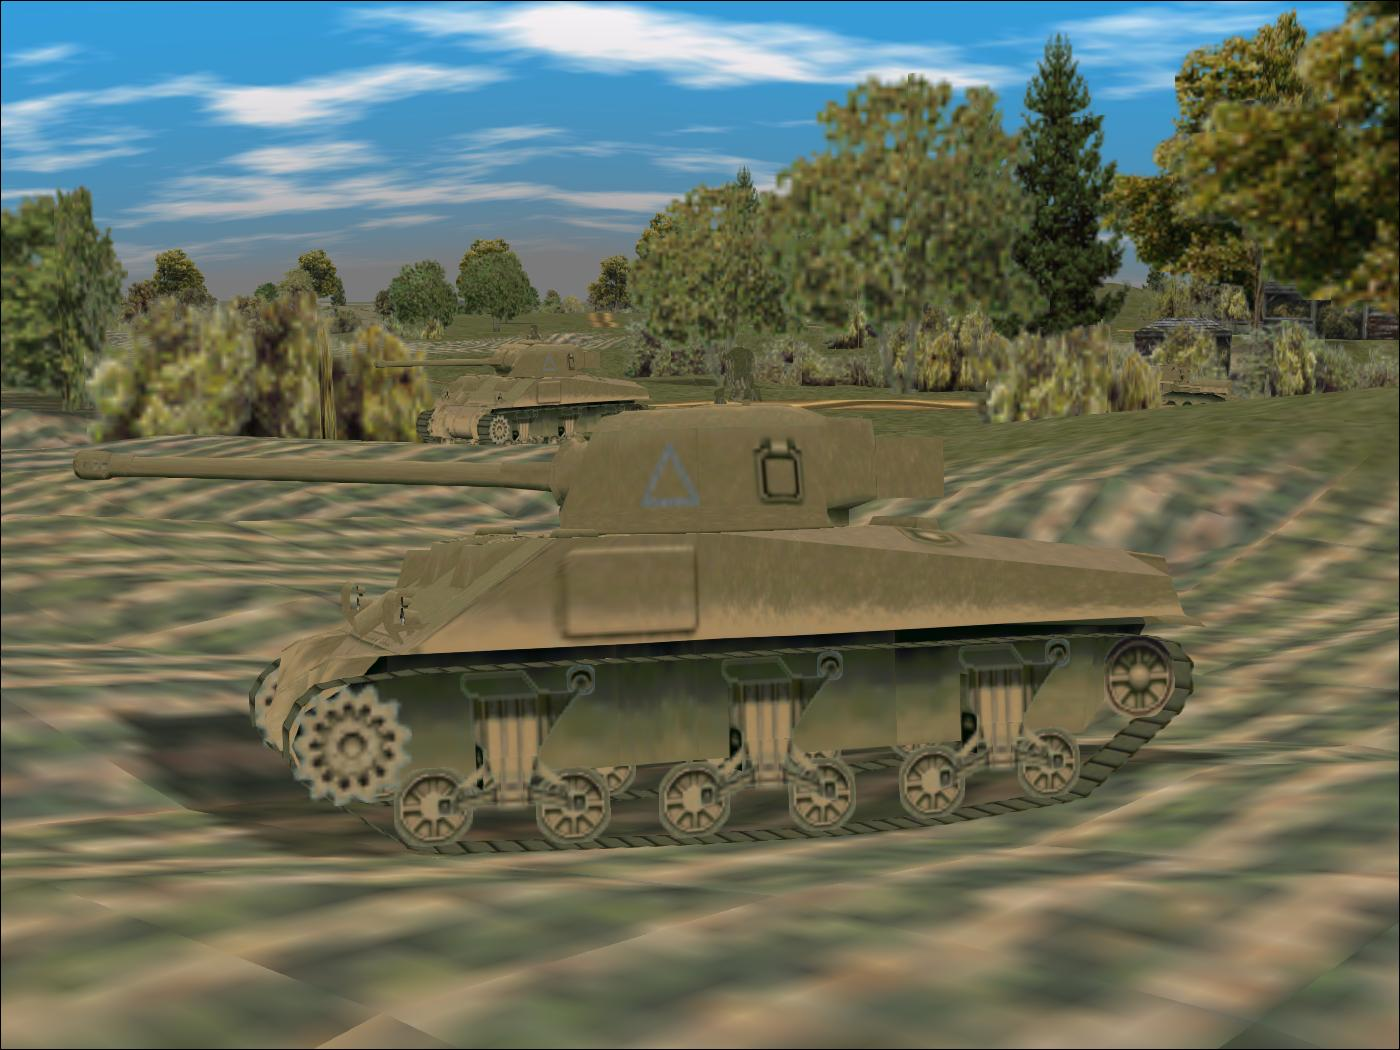 Panzer Elite Brit44-x beta - Sherman Fireflies, Normandy